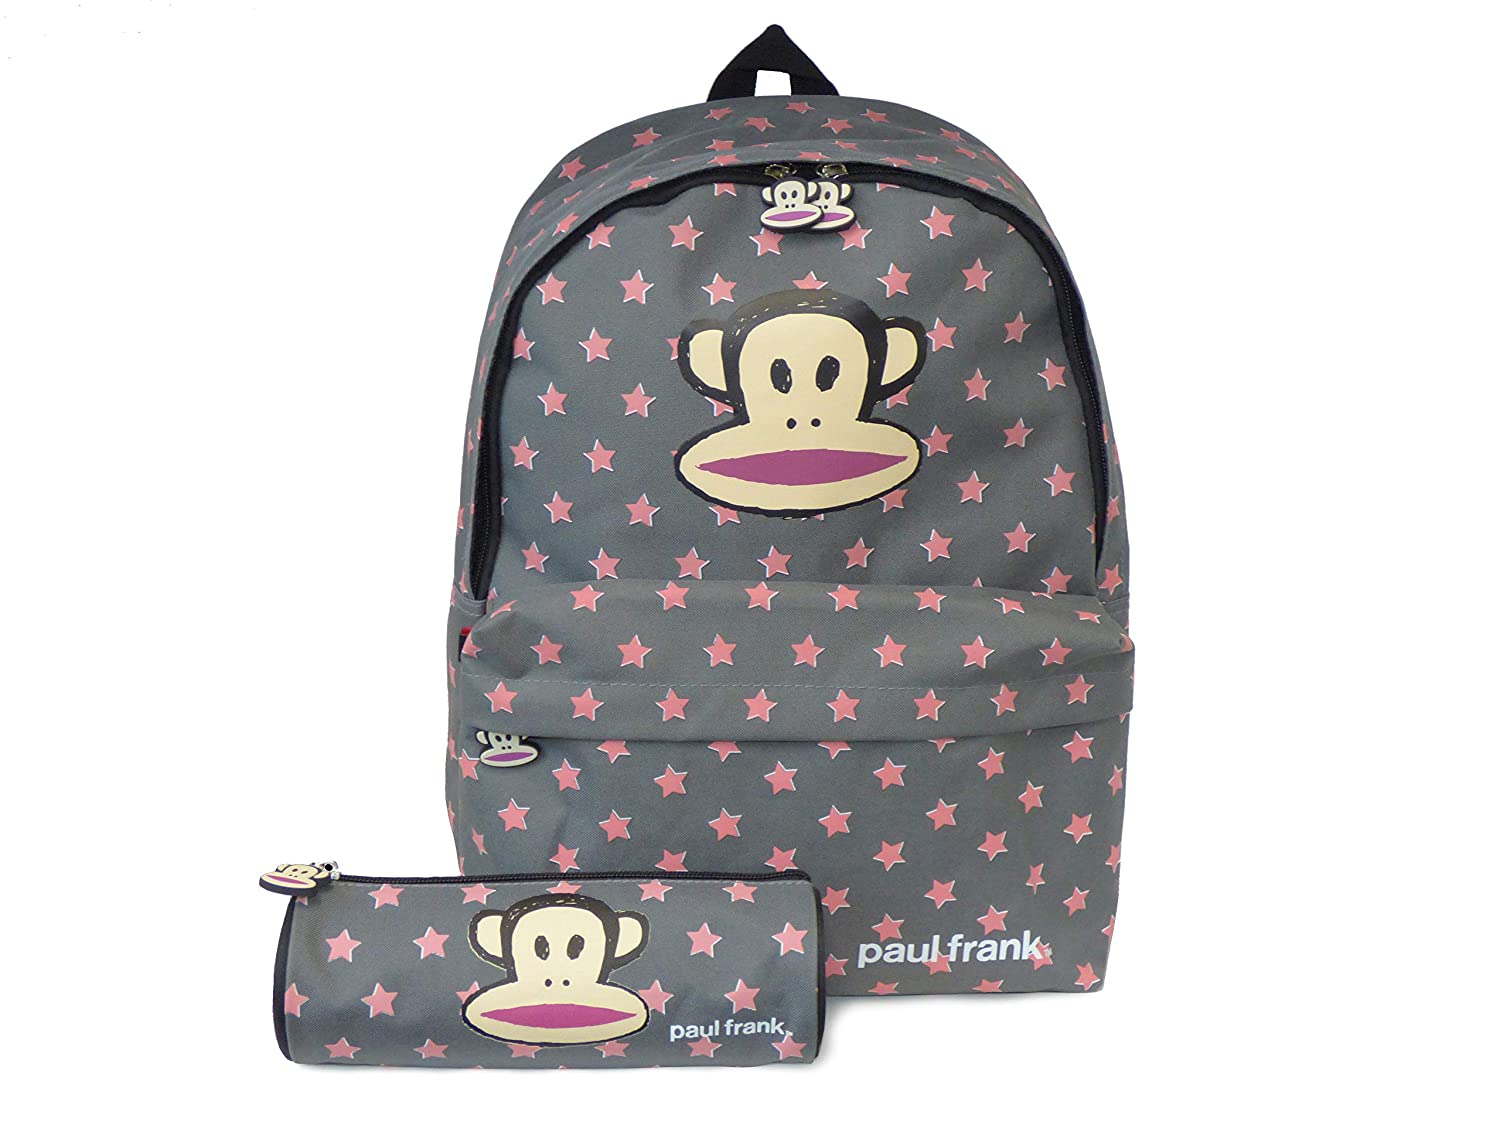 b54d545acf Paul Frank Grey Stars Backpack with Matching Pencil case  Amazon.co.uk   Luggage